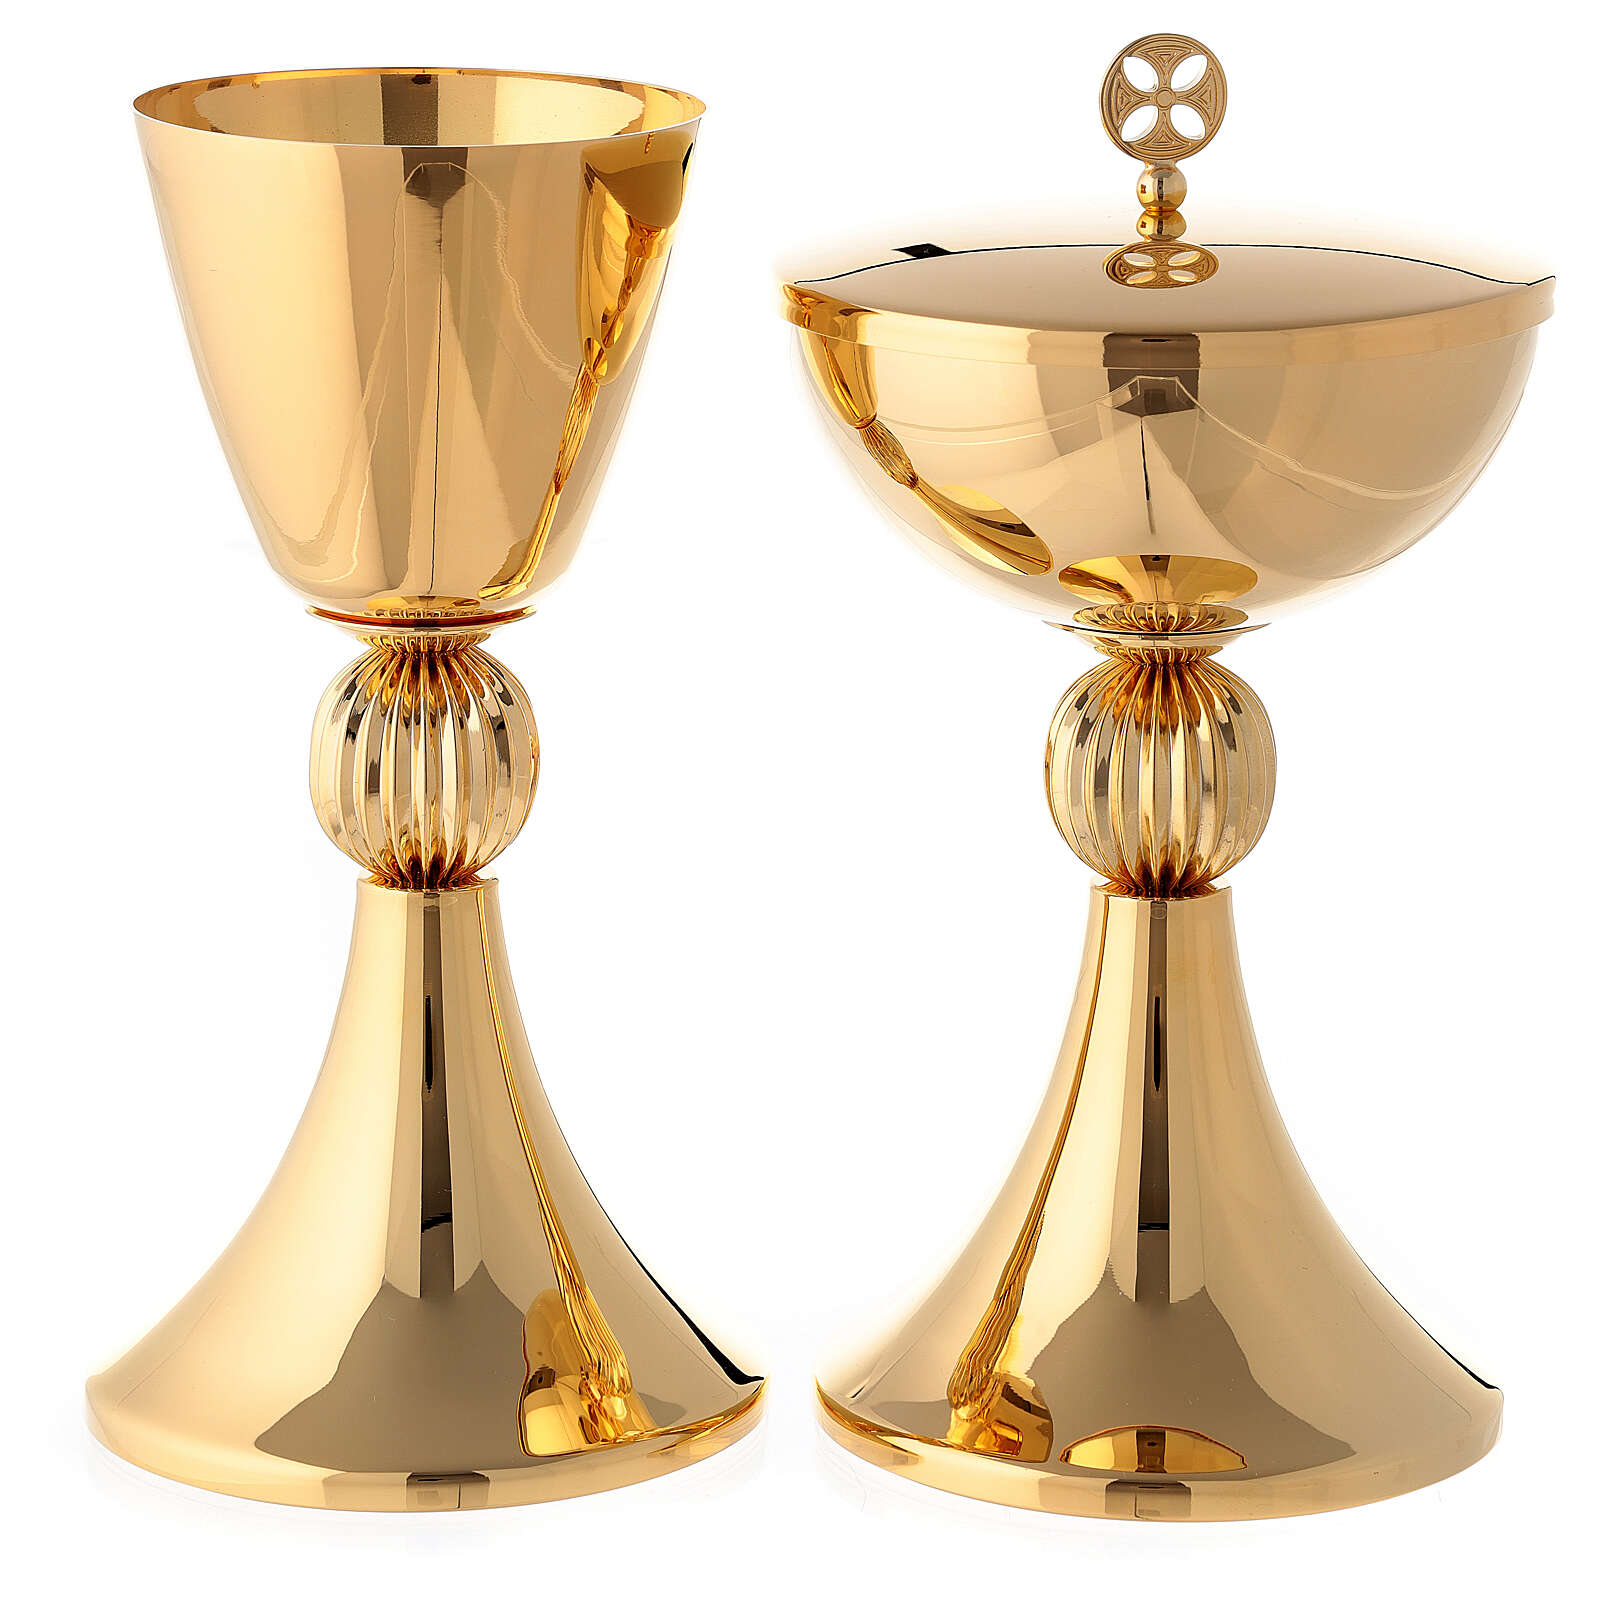 Chalice and ciborium with ribbed node in 24-karat gold plated brass 4